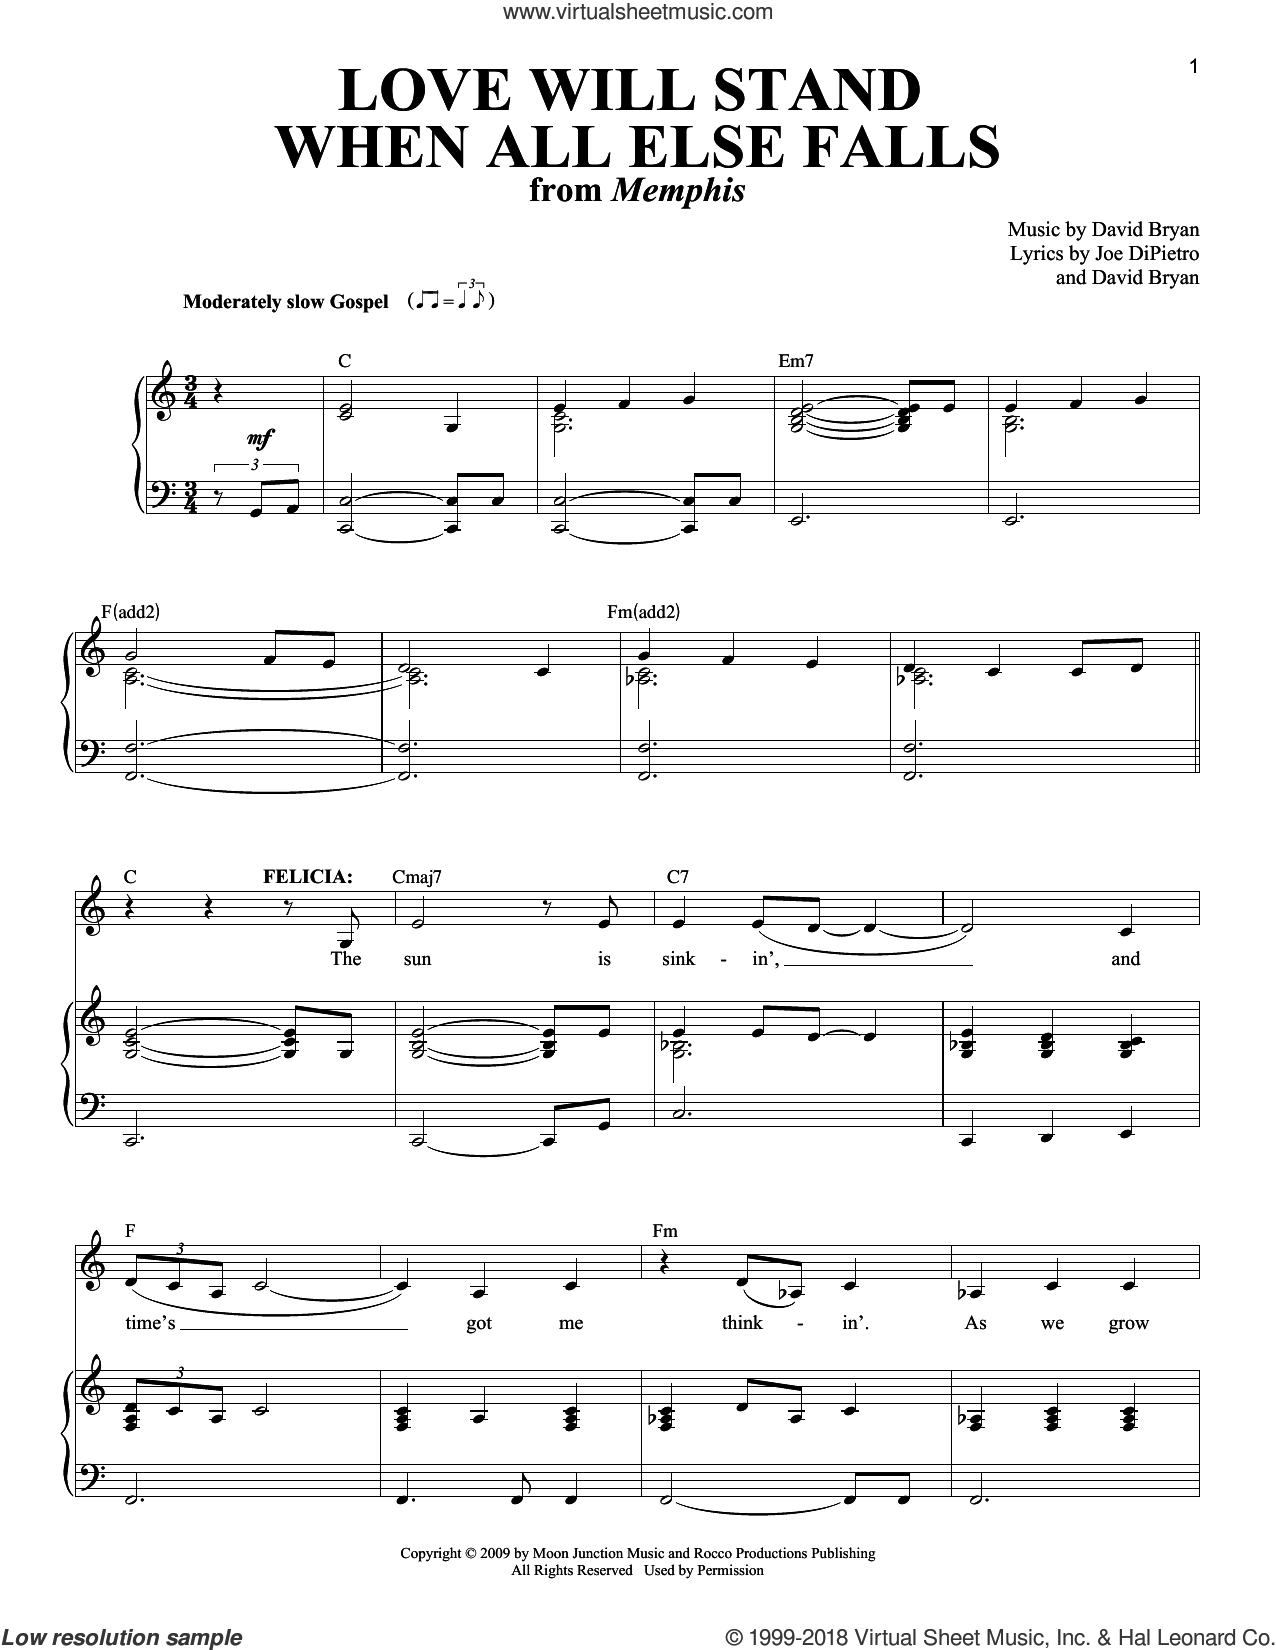 Love Will Stand When All Else Falls sheet music for voice and piano by David Bryan and Joe DiPietro, intermediate skill level